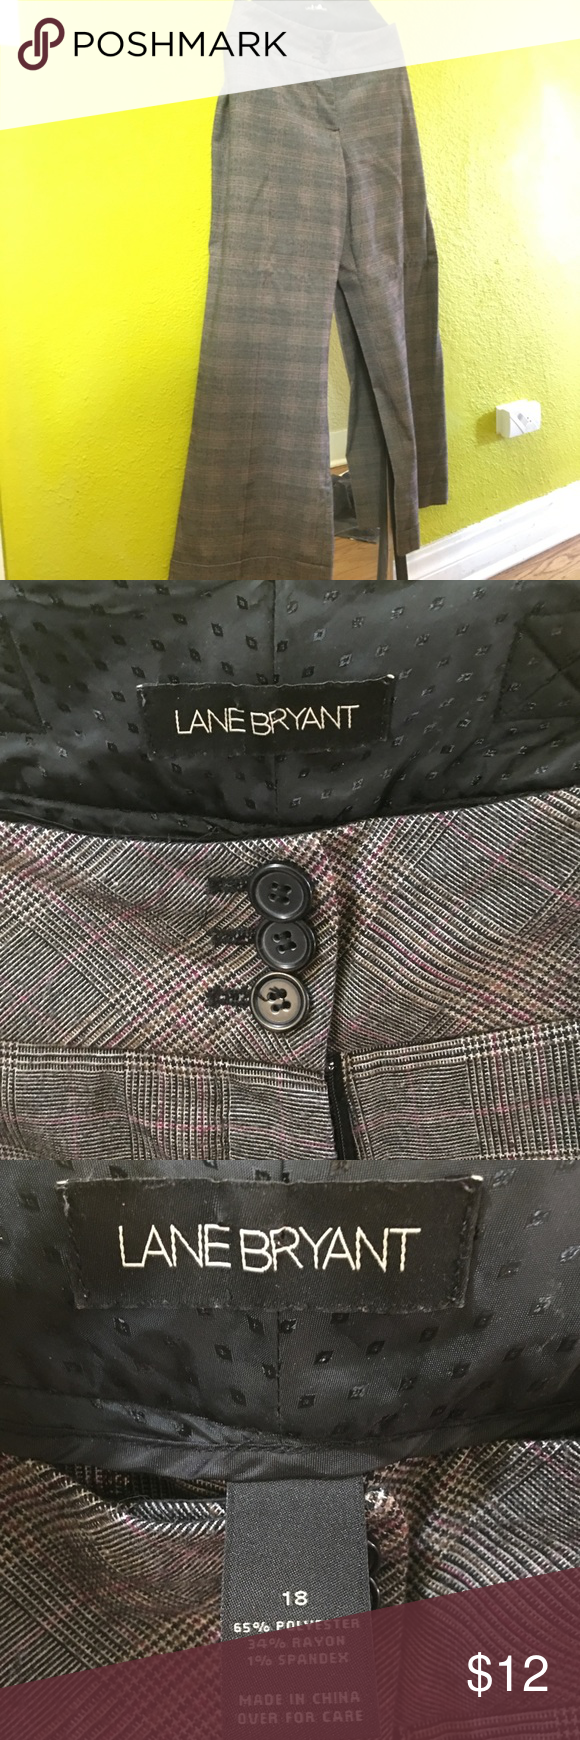 Lane Bryant wide leg dress pants These plaid dress pants are made up of a subtle combination of black, gray, and red. Some slight pilling in the thighs; otherwise they are in good condition. Lane Bryant Pants Wide Leg